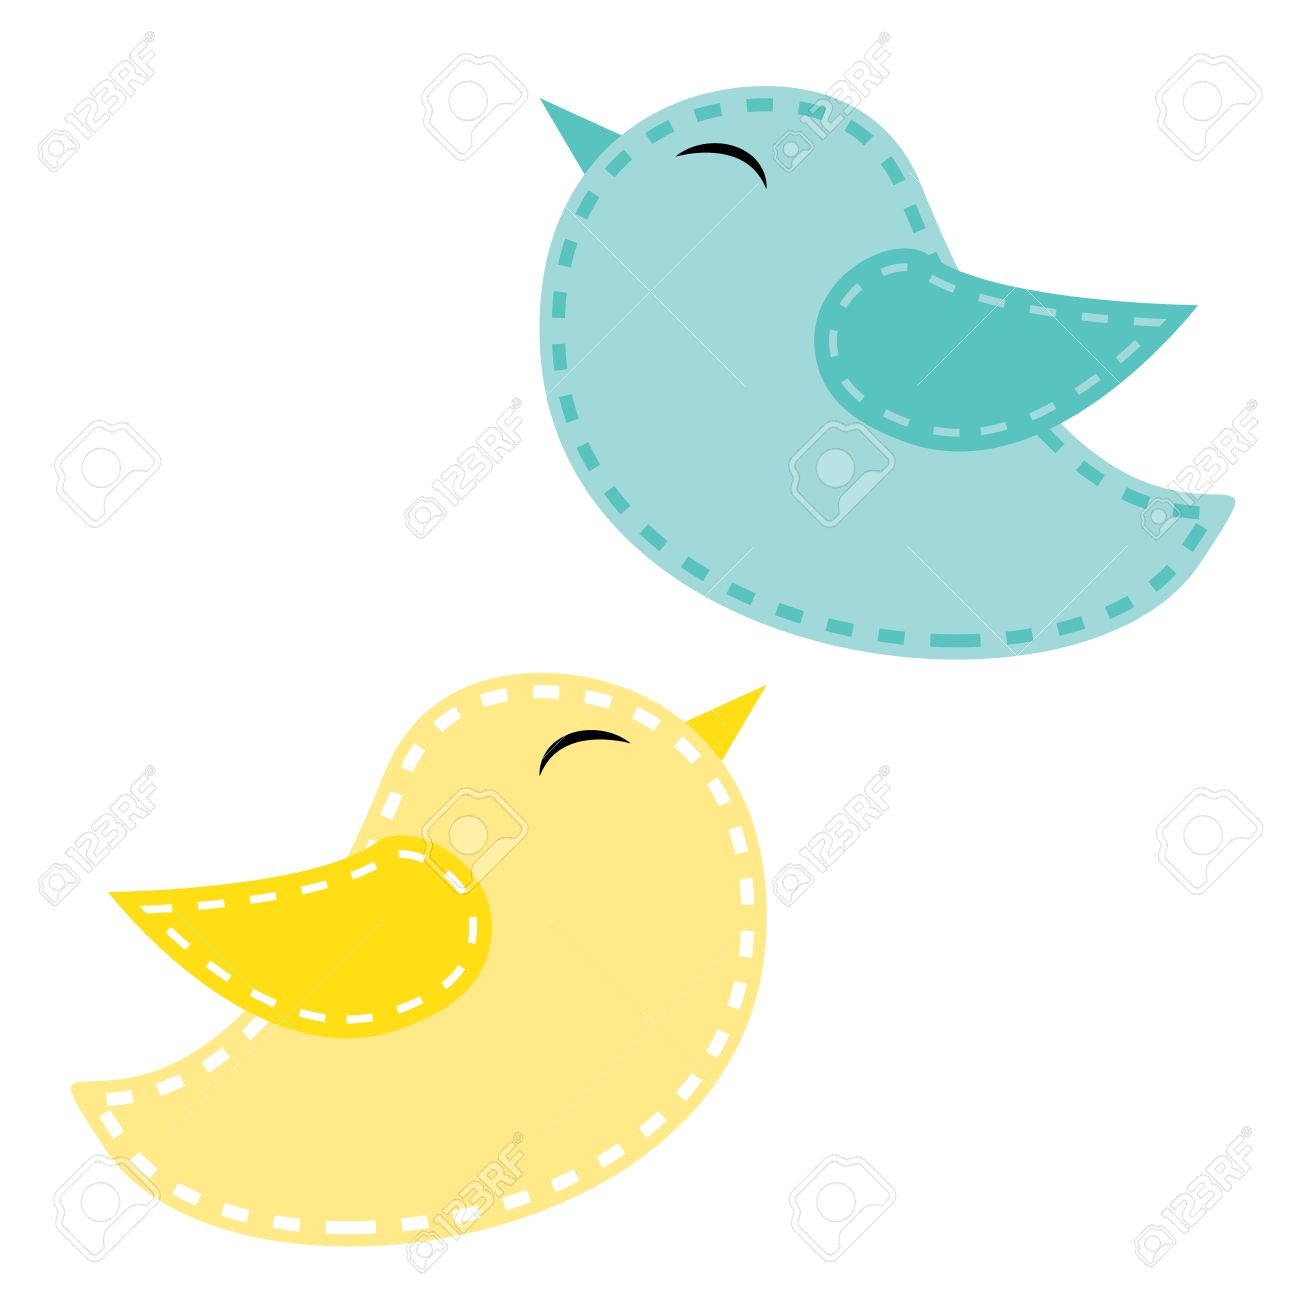 two cute birds blue and yellow on a transparent background rh 123rf com transparent background clipart download transparent background clipart free